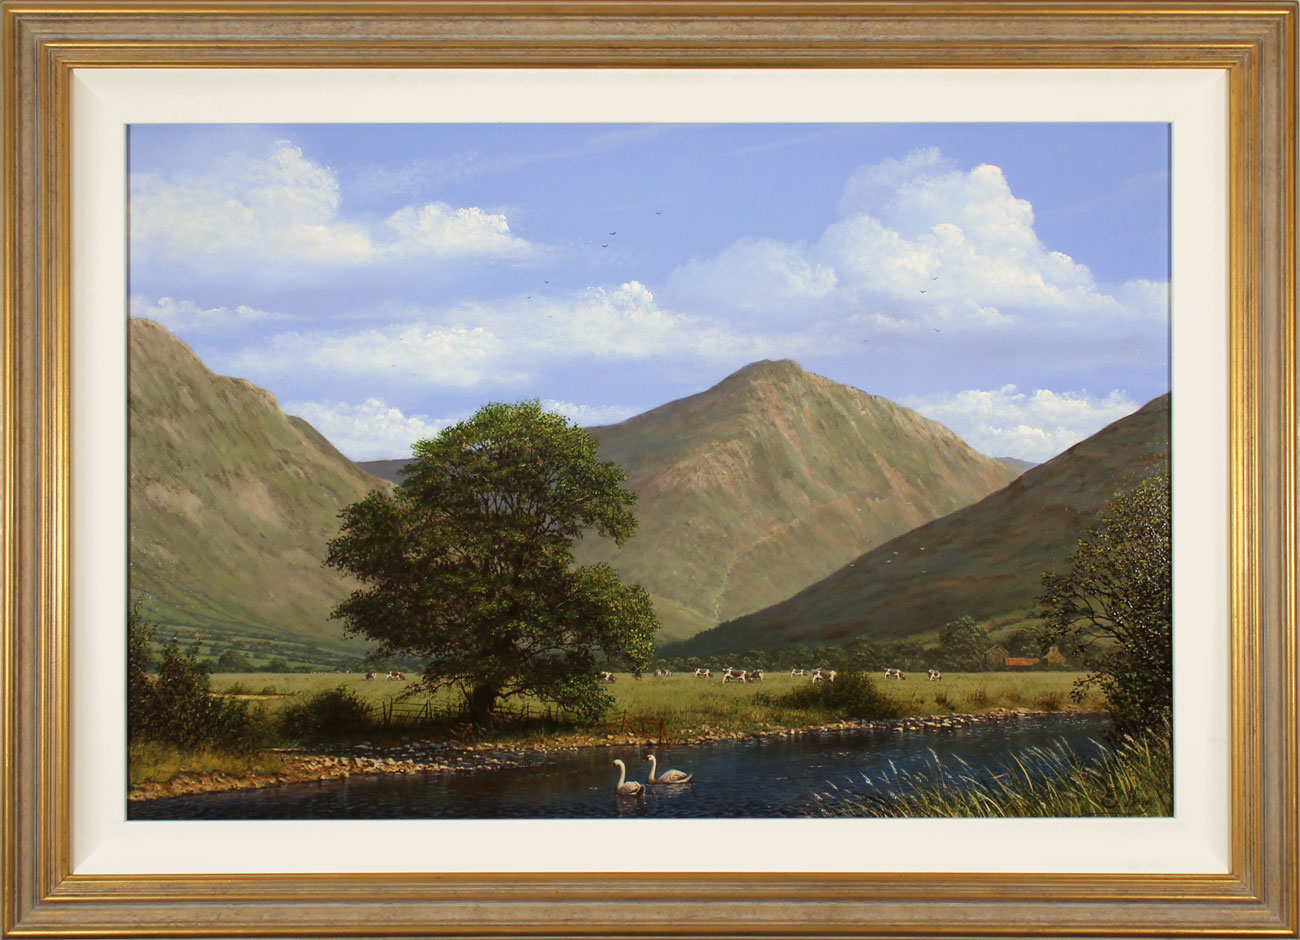 Edward Hersey, Original oil painting on panel, Great Gable, The Lake District, click to enlarge